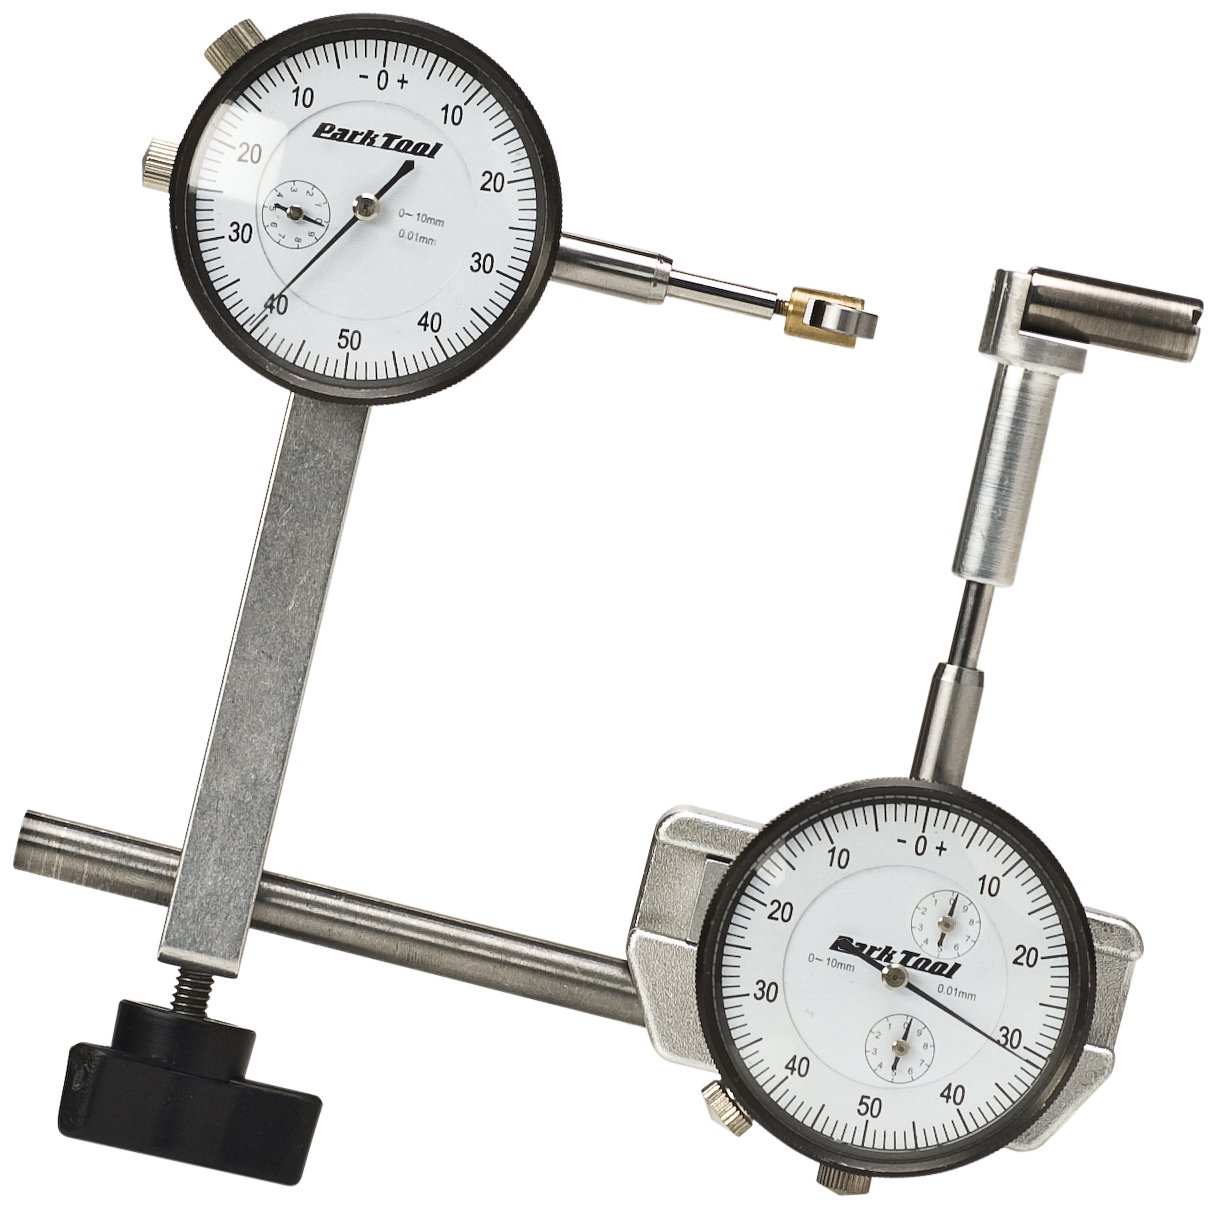 Park Tool Dial Indicator Gauge Set for TS-2.2 and TS-2 Truing Stands